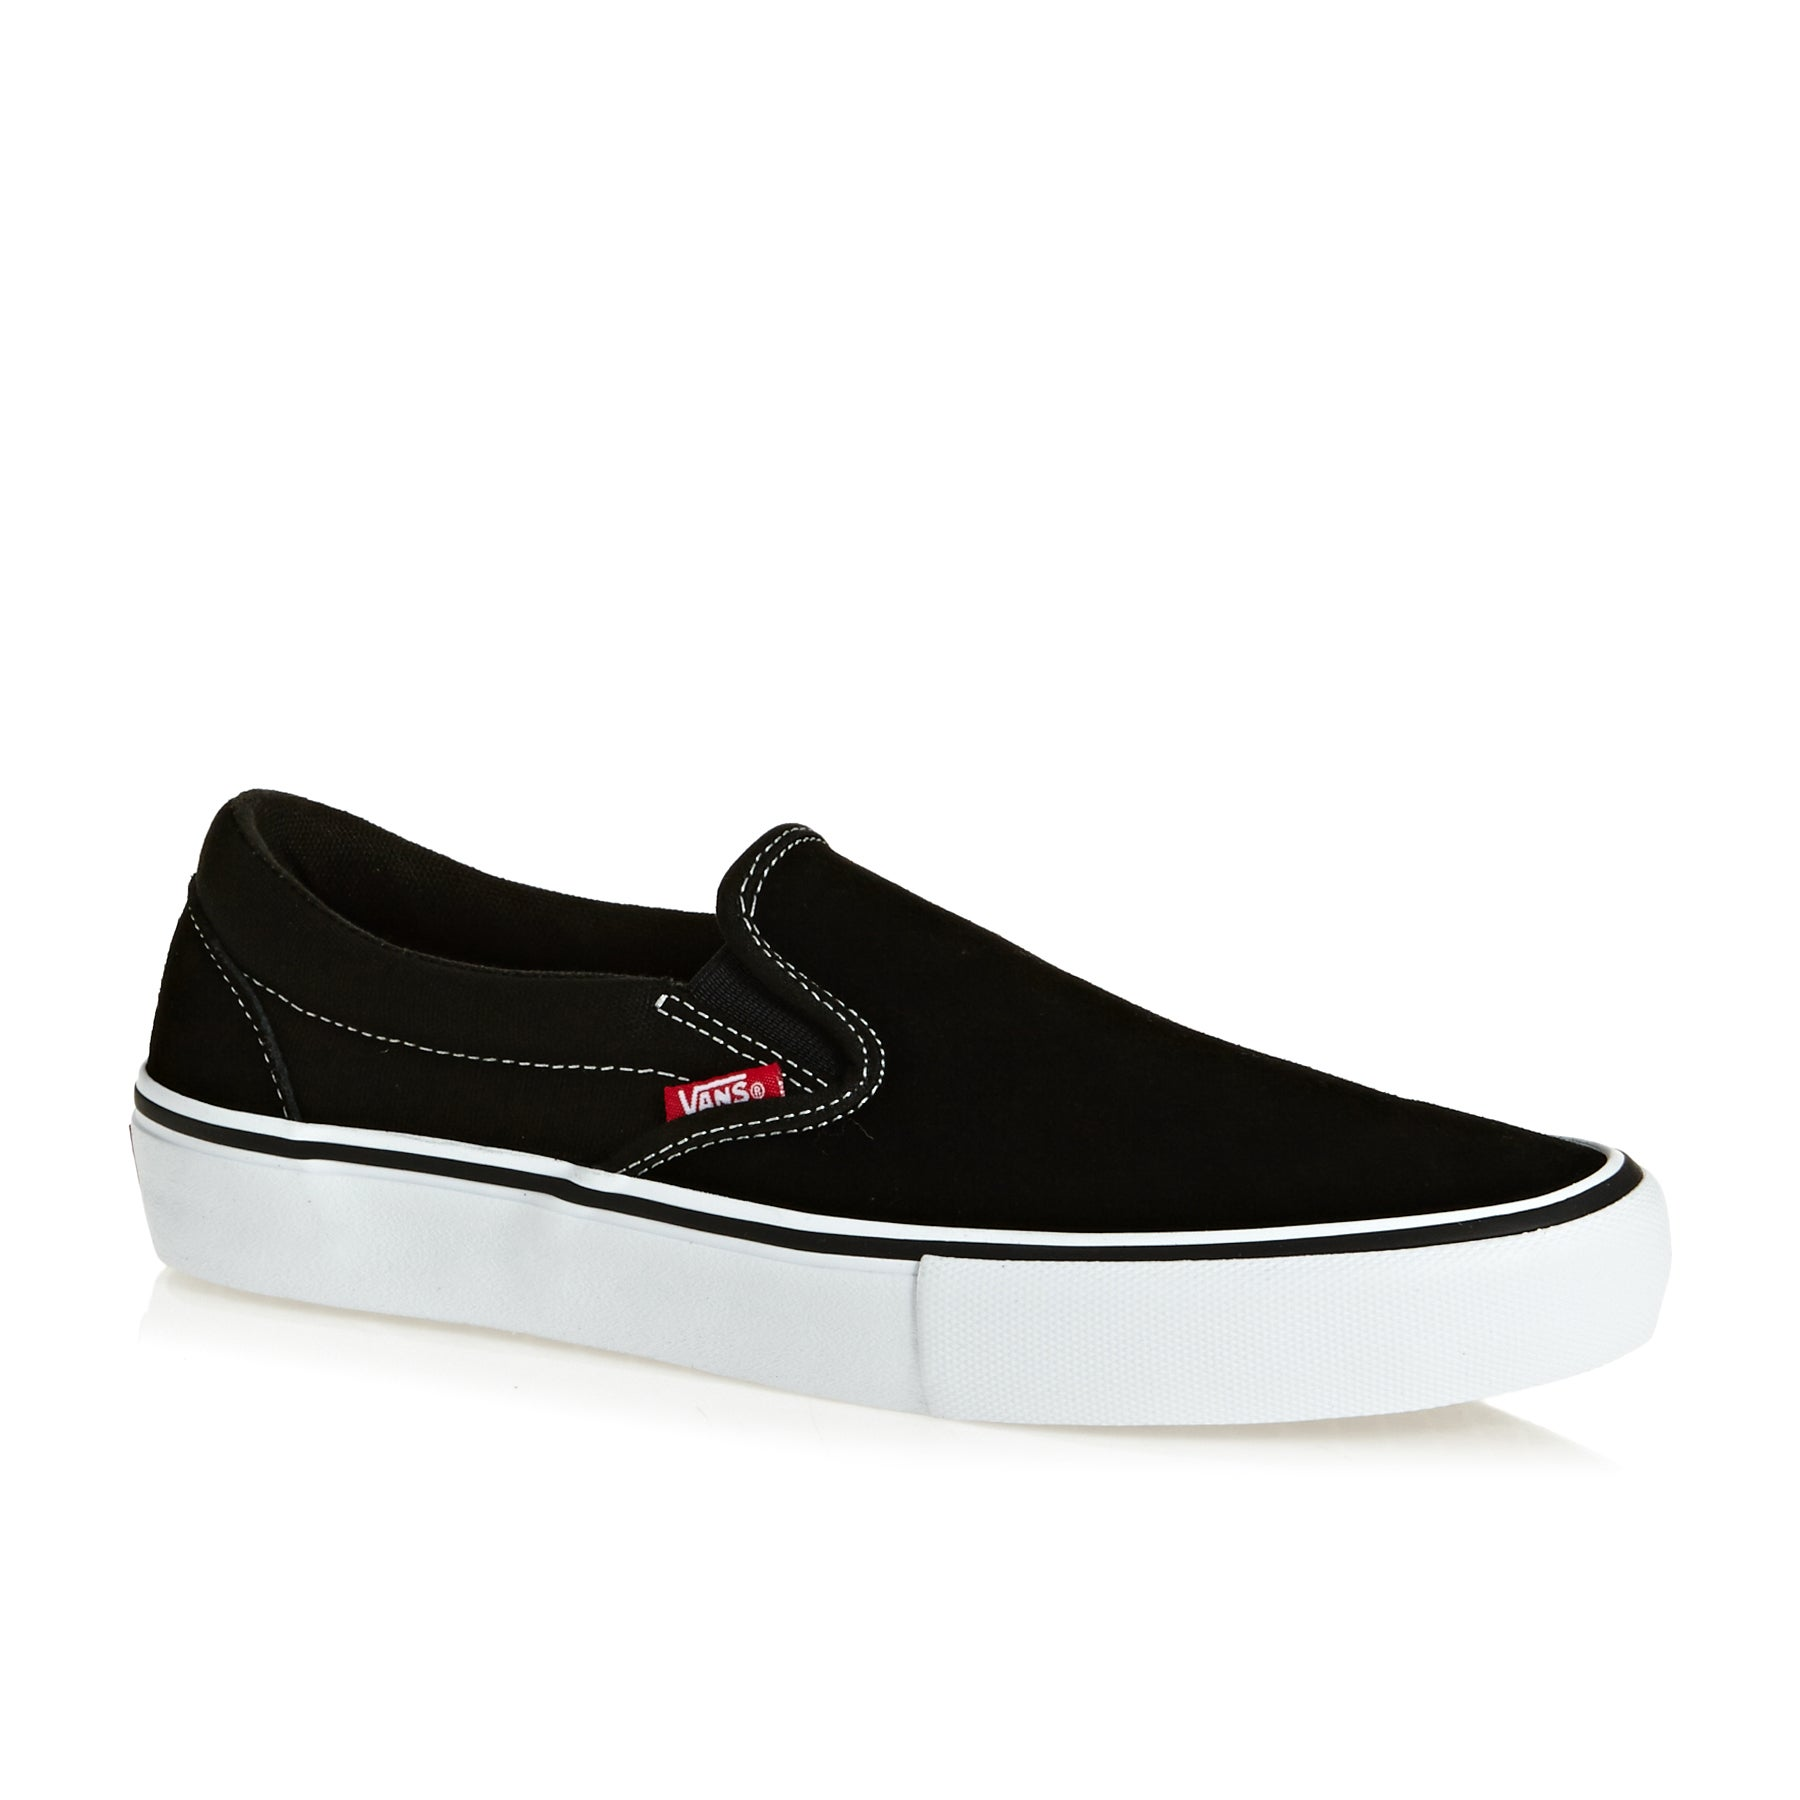 Vans Pro Mens Slip On Shoes